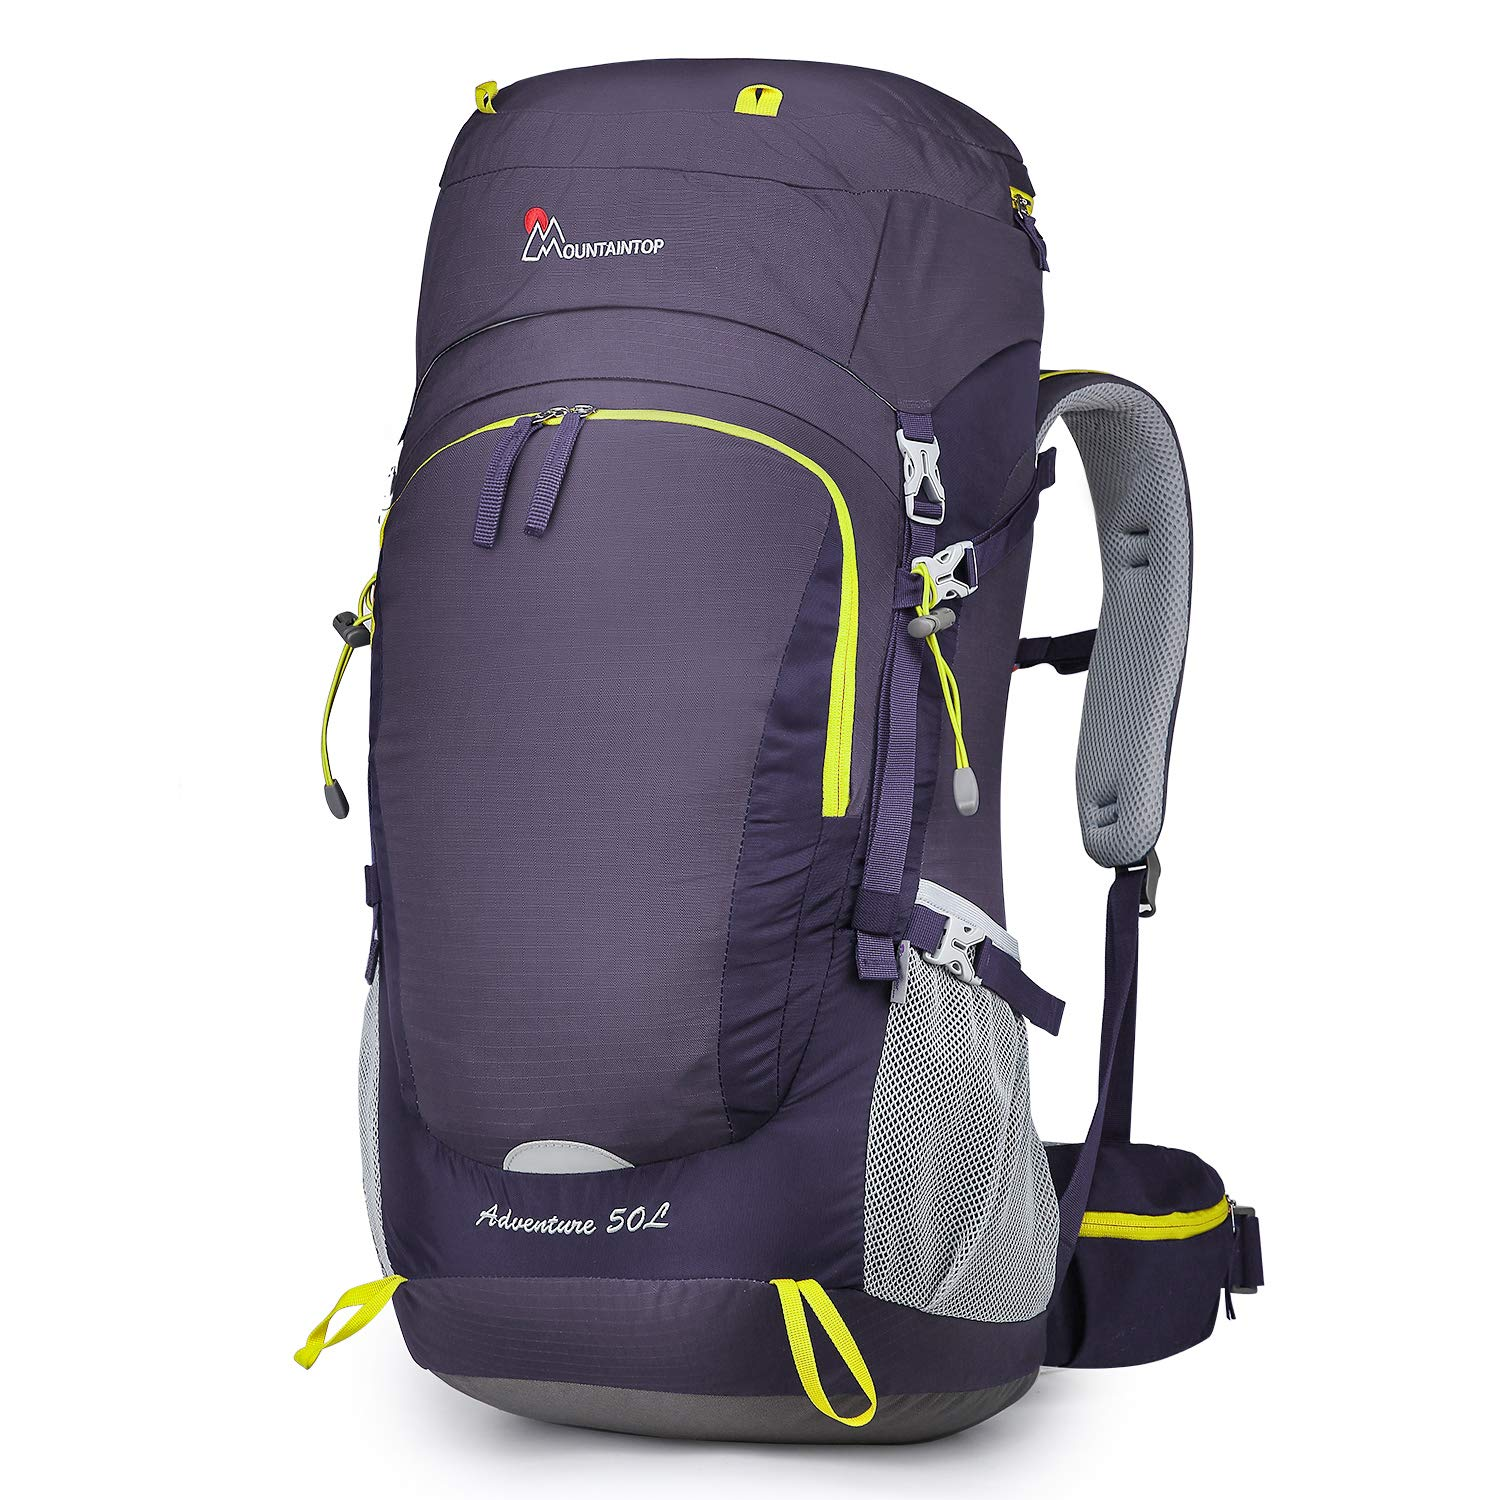 MOUNTAINTOP 50L/60L Hiking Backpack with Rain Cover (50L-Purple) by MOUNTAINTOP